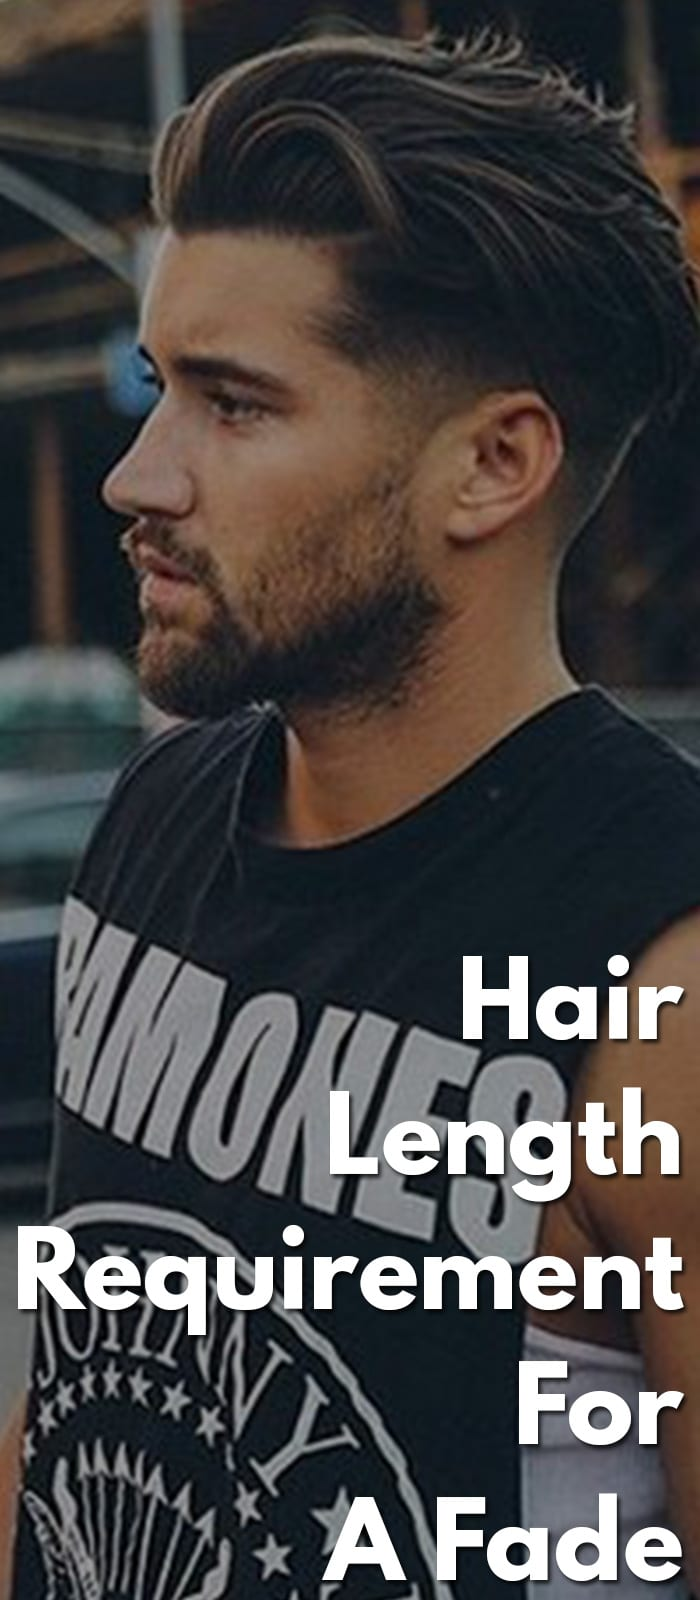 Hair-Length-Requirement-For-A-Fade.